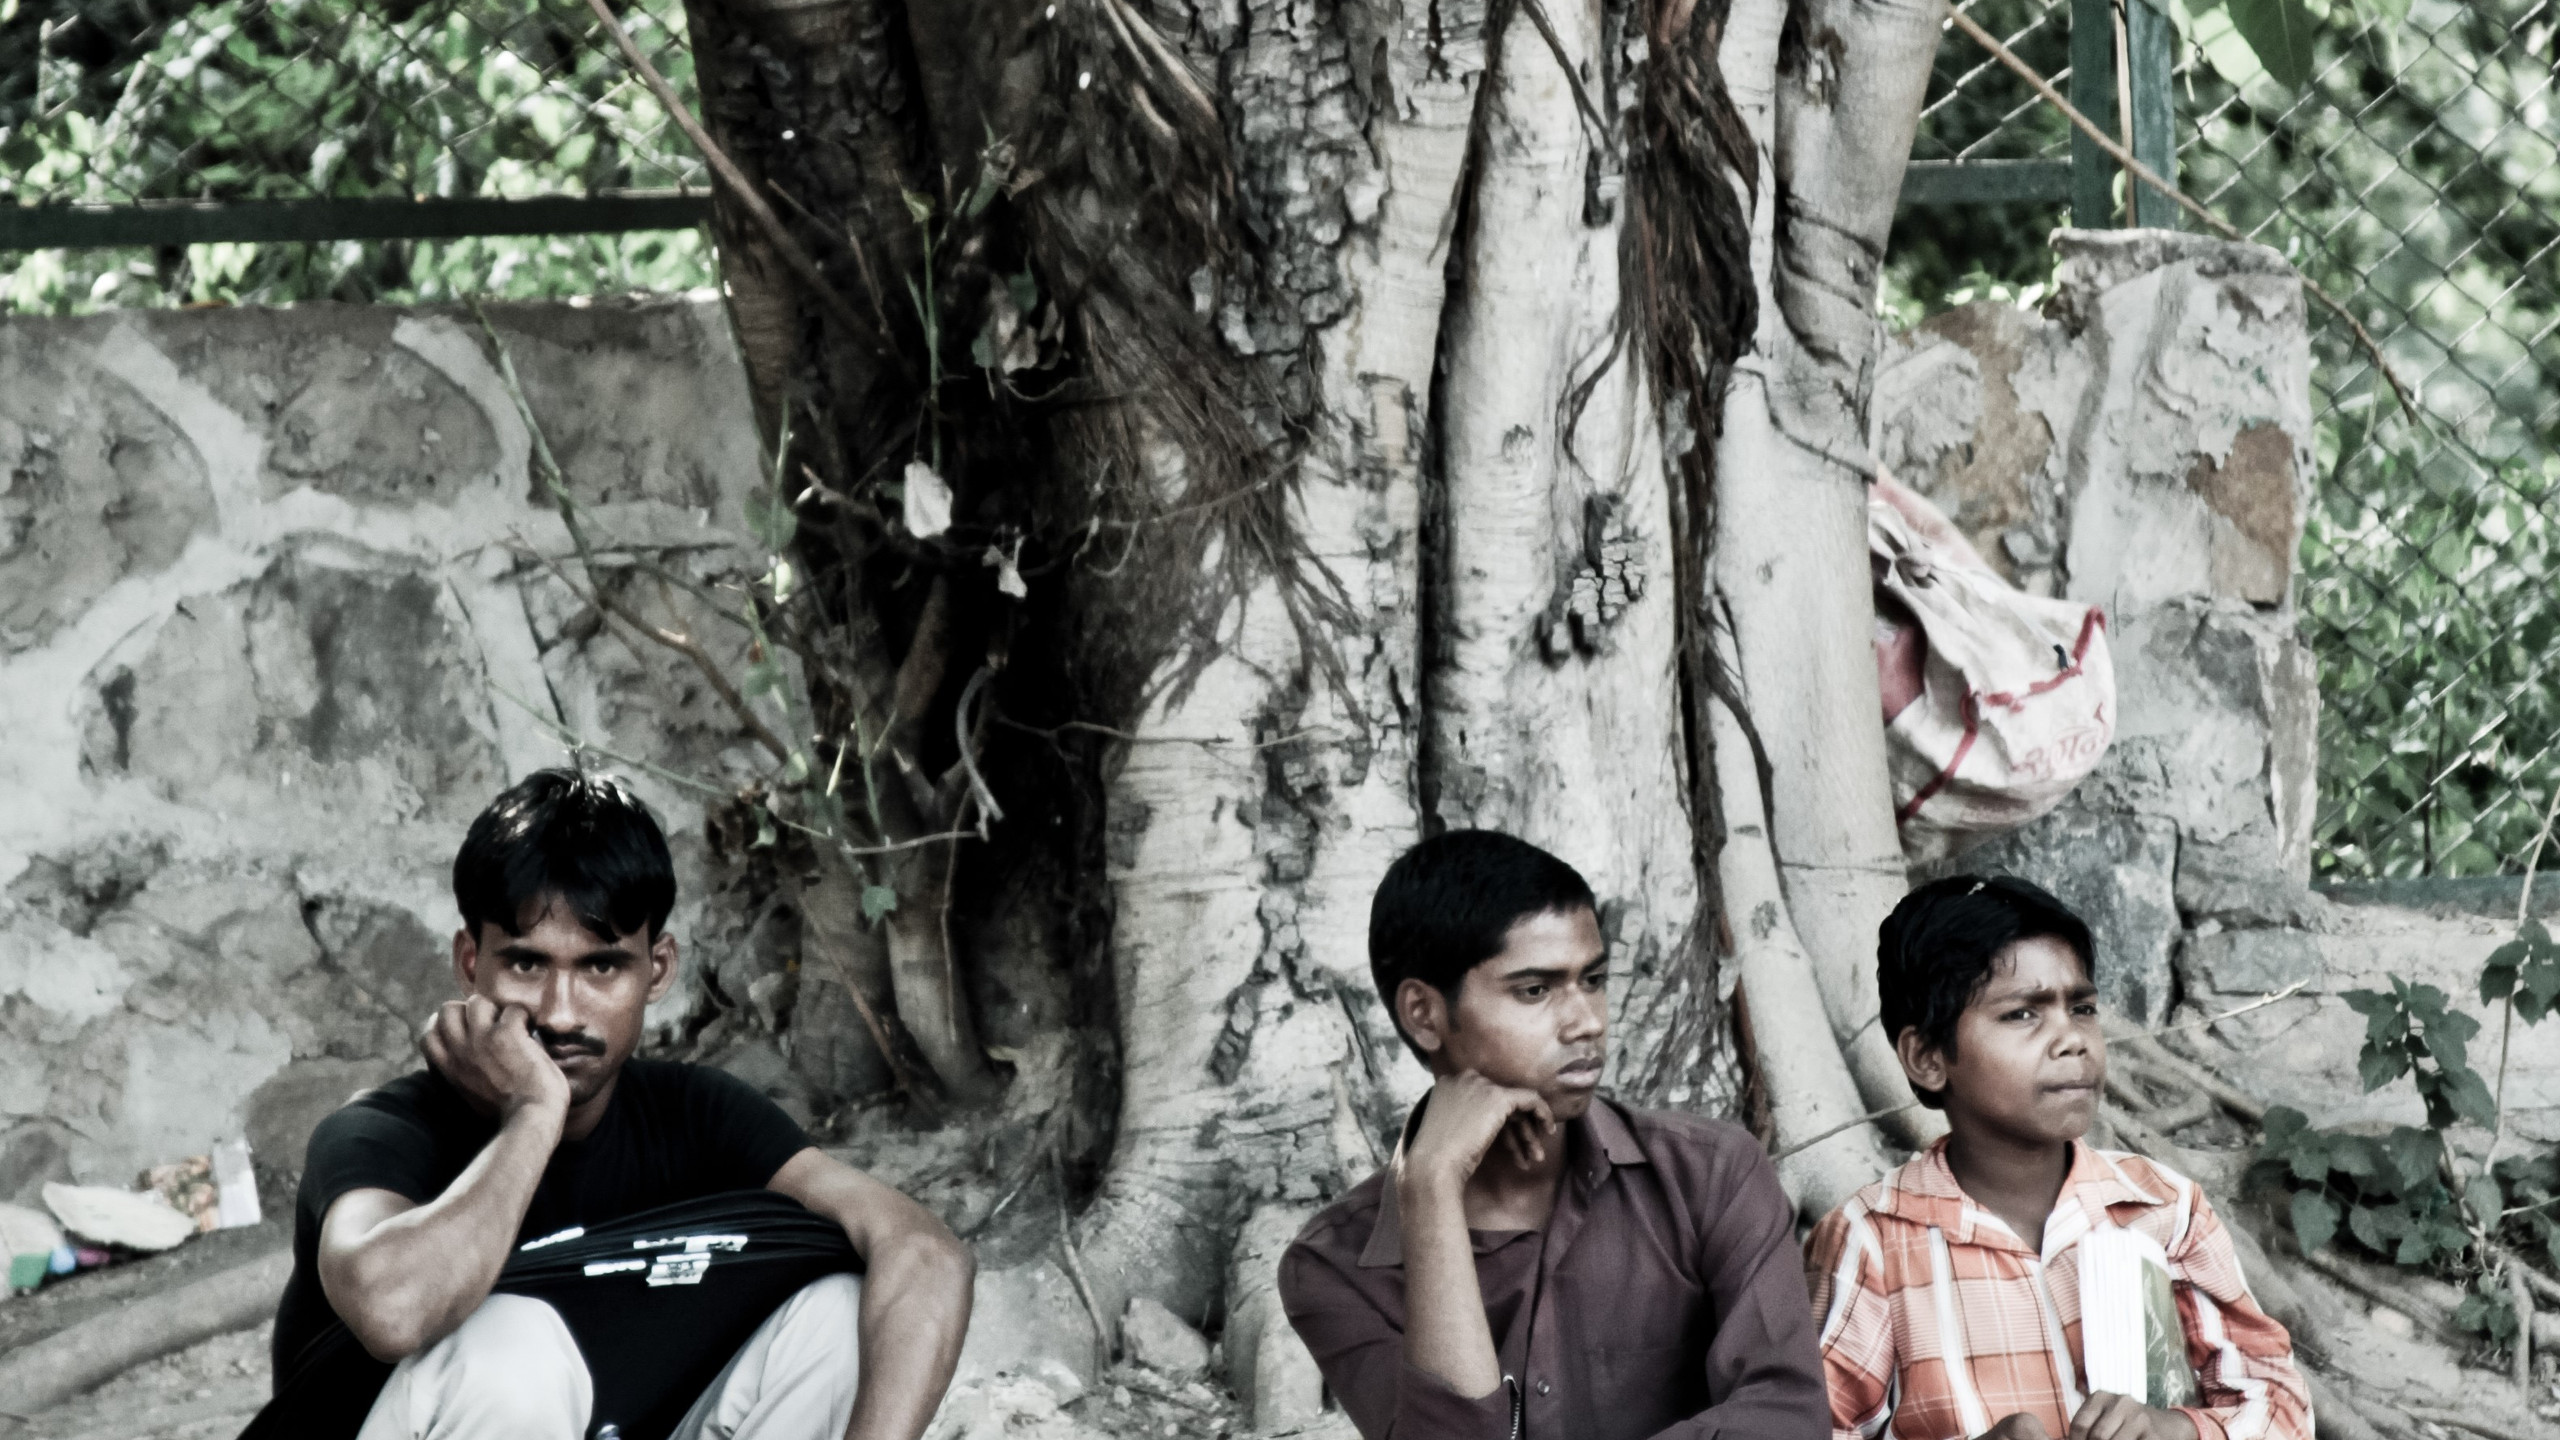 Newspapers and magazine sellers take a break under a banyan tree near a traffic island in south Delhi. Over a third of all migrants in the country belong to 15-29 age group